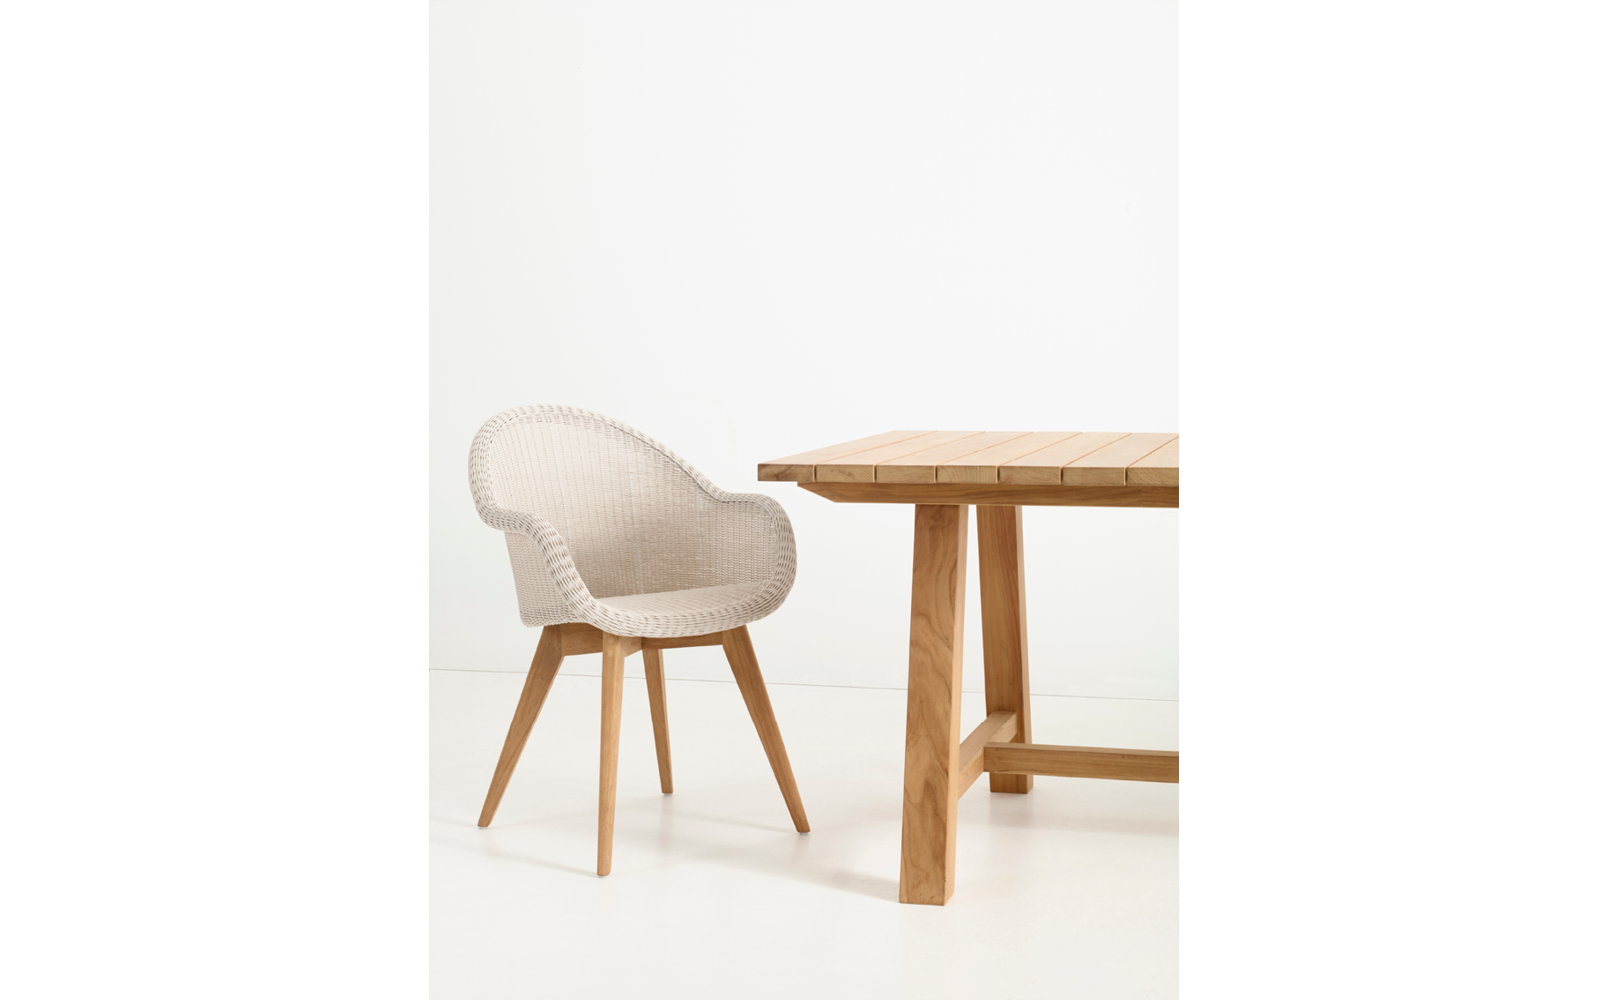 vincent-sheppard-Edgard-dining-chair-teak-base-bernard